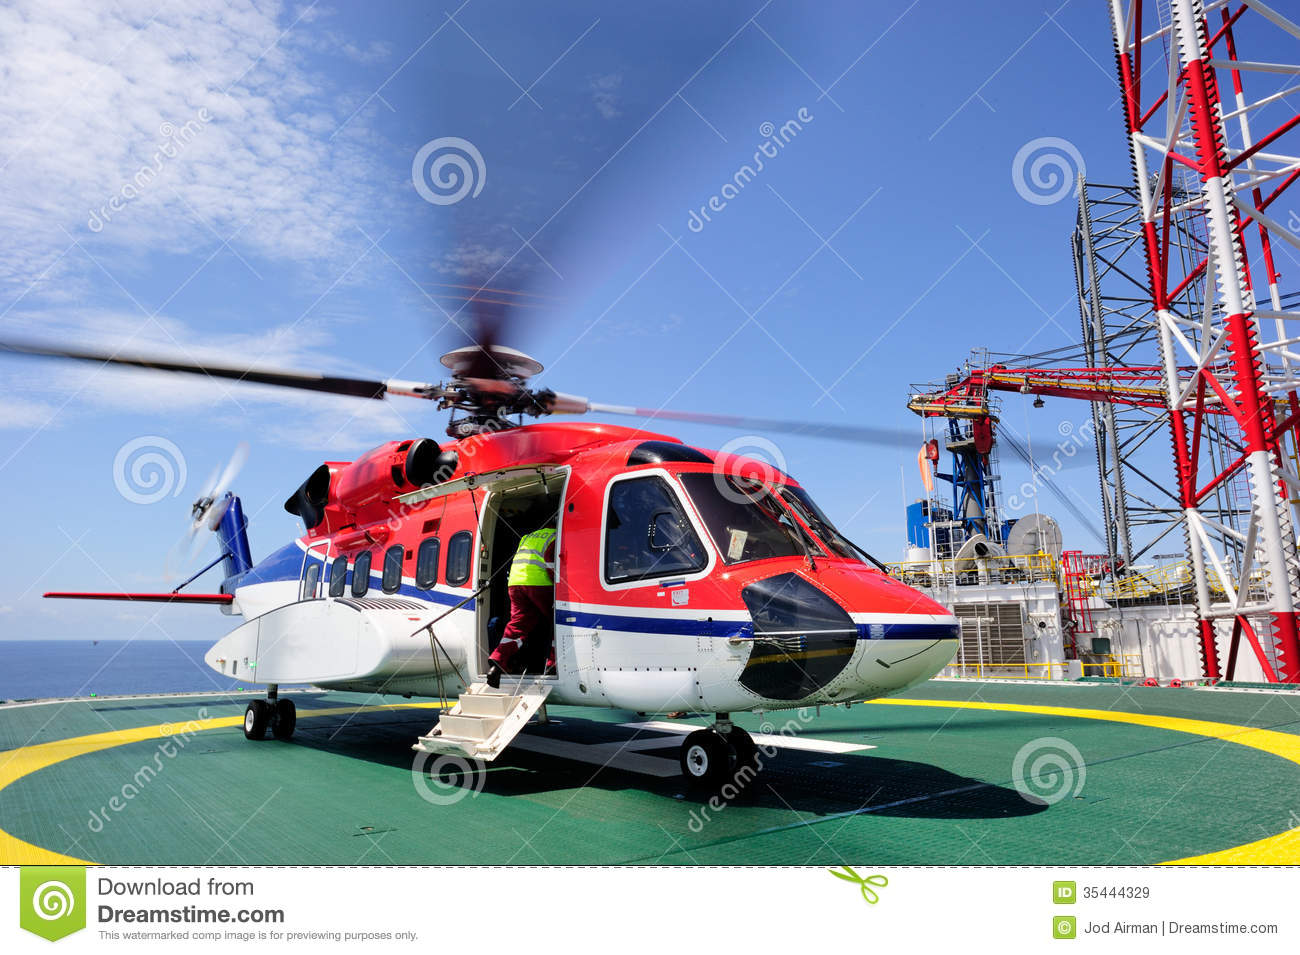 An Offshore Helicopter On The Helideck Royalty Free Stock Images  Image 354